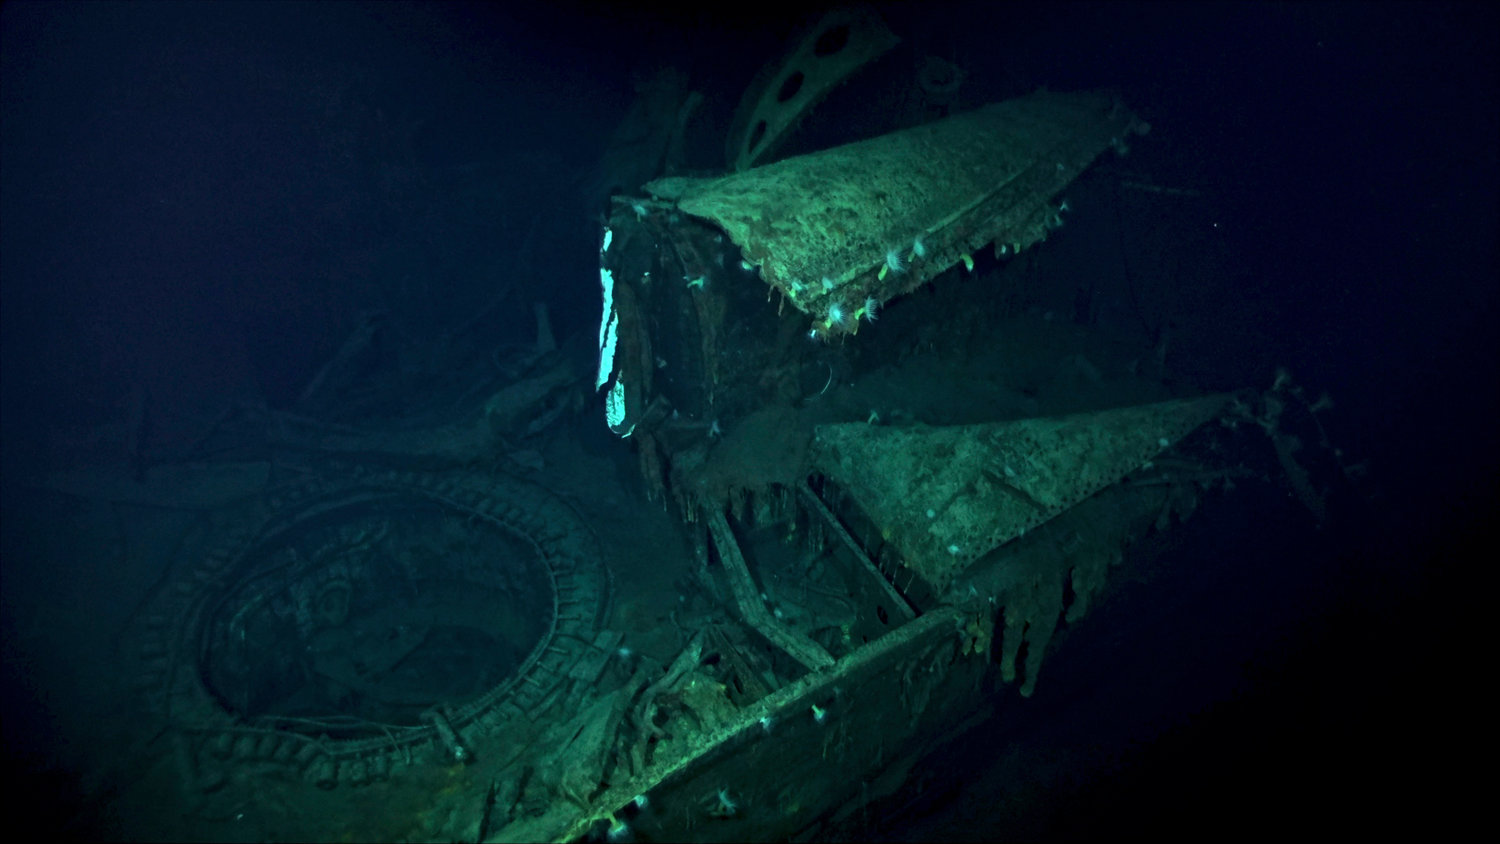 In this Oct. 7, 2019 image taken from underwater video provided by Vulcan Inc., the Japanese aircraft carrier Kaga is shown in the Pacific Ocean off Midway Atoll in the Northwestern Hawaiian Islands. Deep-sea explorers scouring the world's oceans for sunken World War II ships are honing in on a debris field deep in the Pacific. A research vessel called the Petrel is launching underwater robots about halfway between the U.S. and Japan in search of warships from the Battle of Midway. Weeks of grid searches around the Northwestern Hawaiian Islands already have led the Petrel to one sunken battleship, the Kaga. This week, it's investigating what could be another. (Vulcan Inc. via AP)